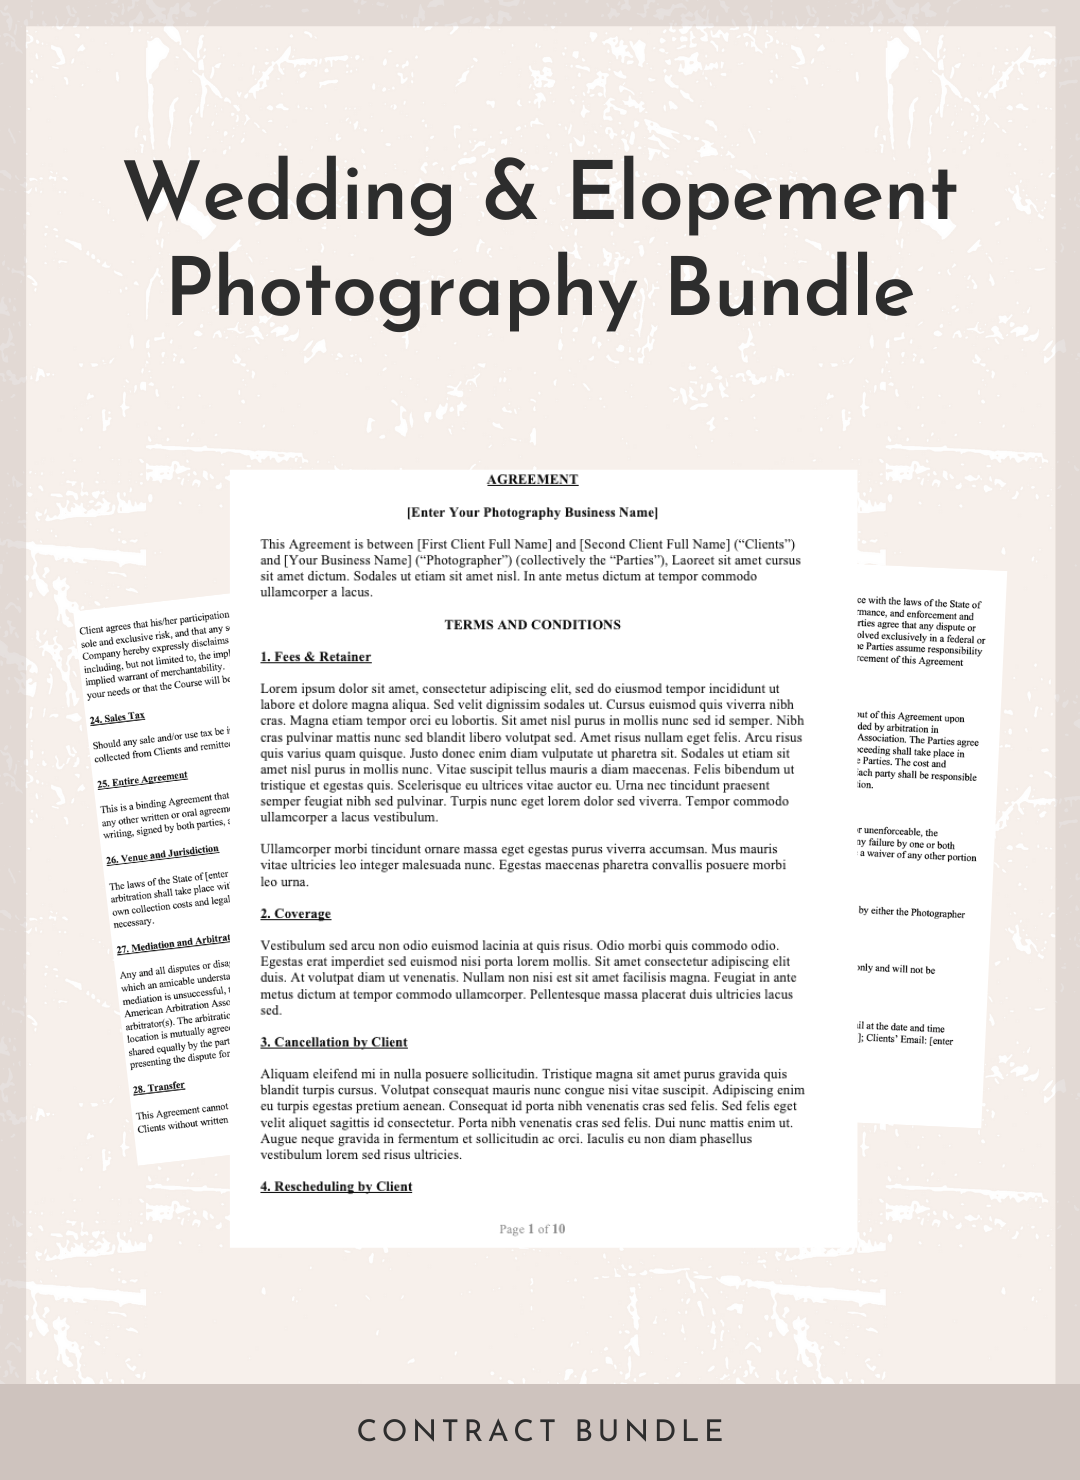 Wedding & Elopement Photography Bundle